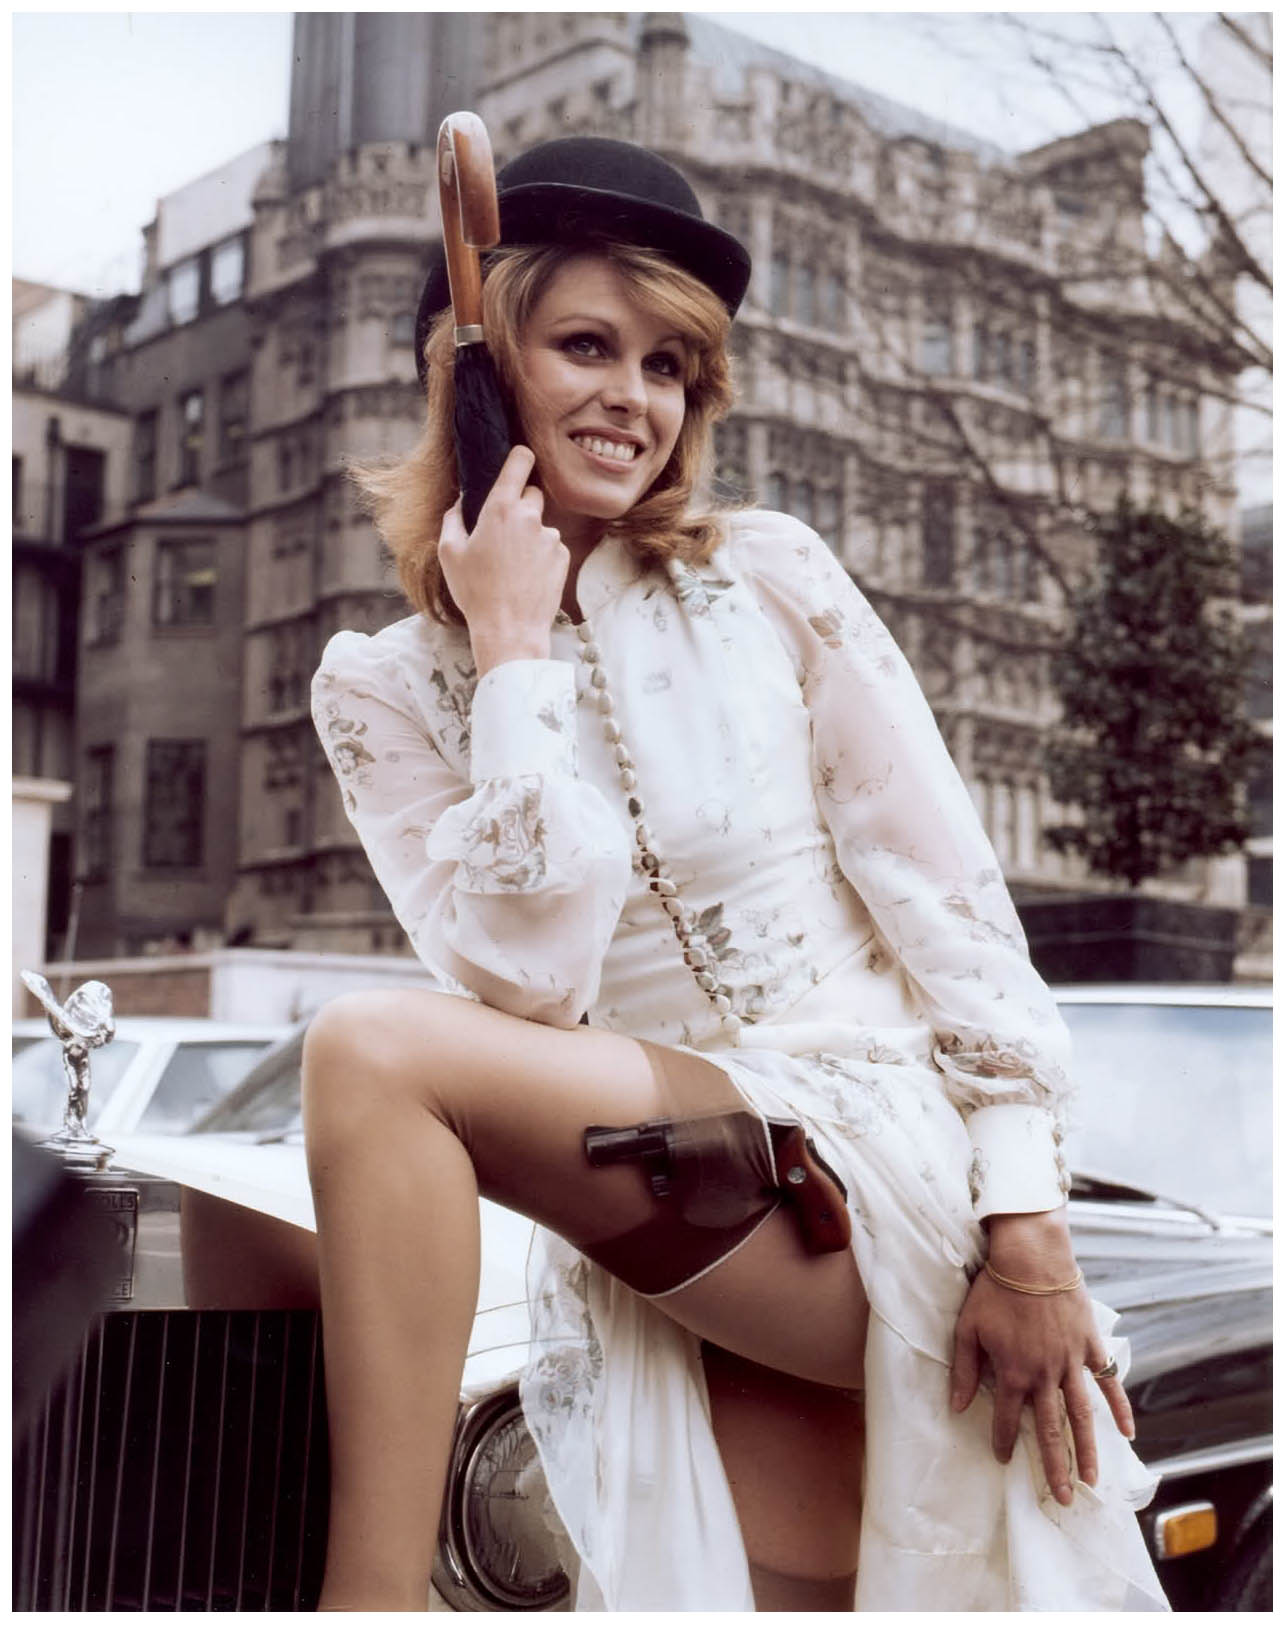 Joanna Lumley as Purdey (The Avengers) 1972 Photo Brian ...